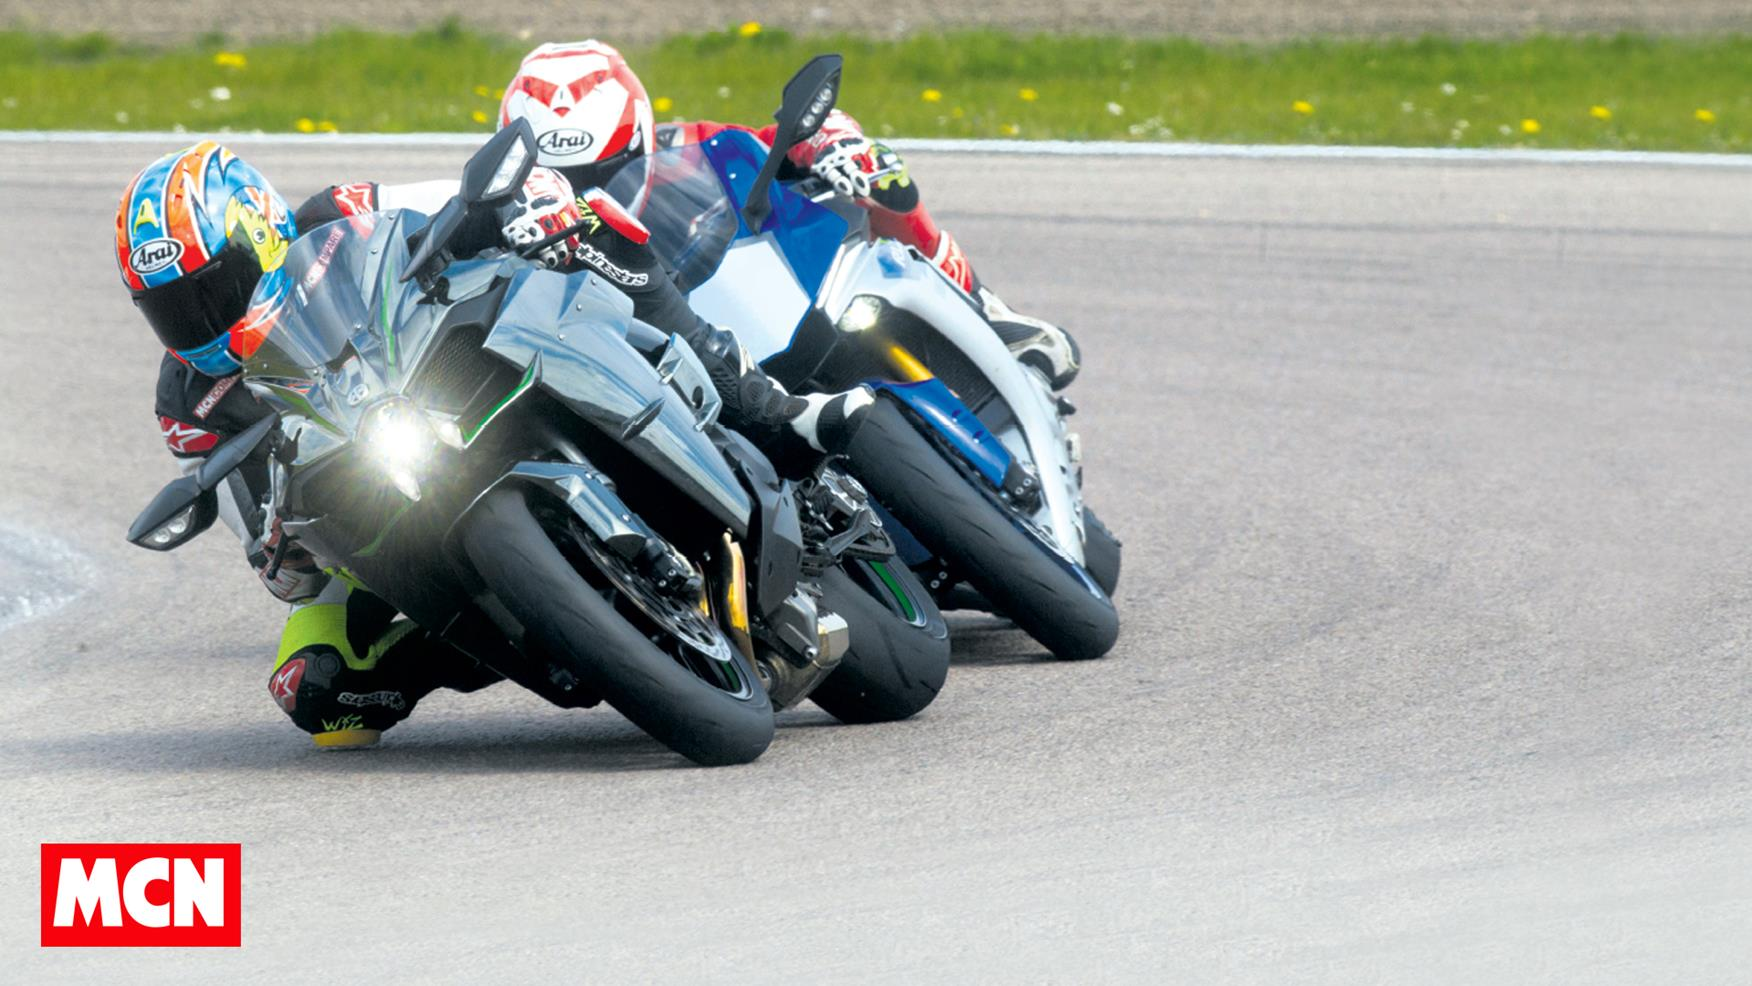 VIDEO: Kawasaki H2 2015 ridden at Rockingham by Neevesy | MCN